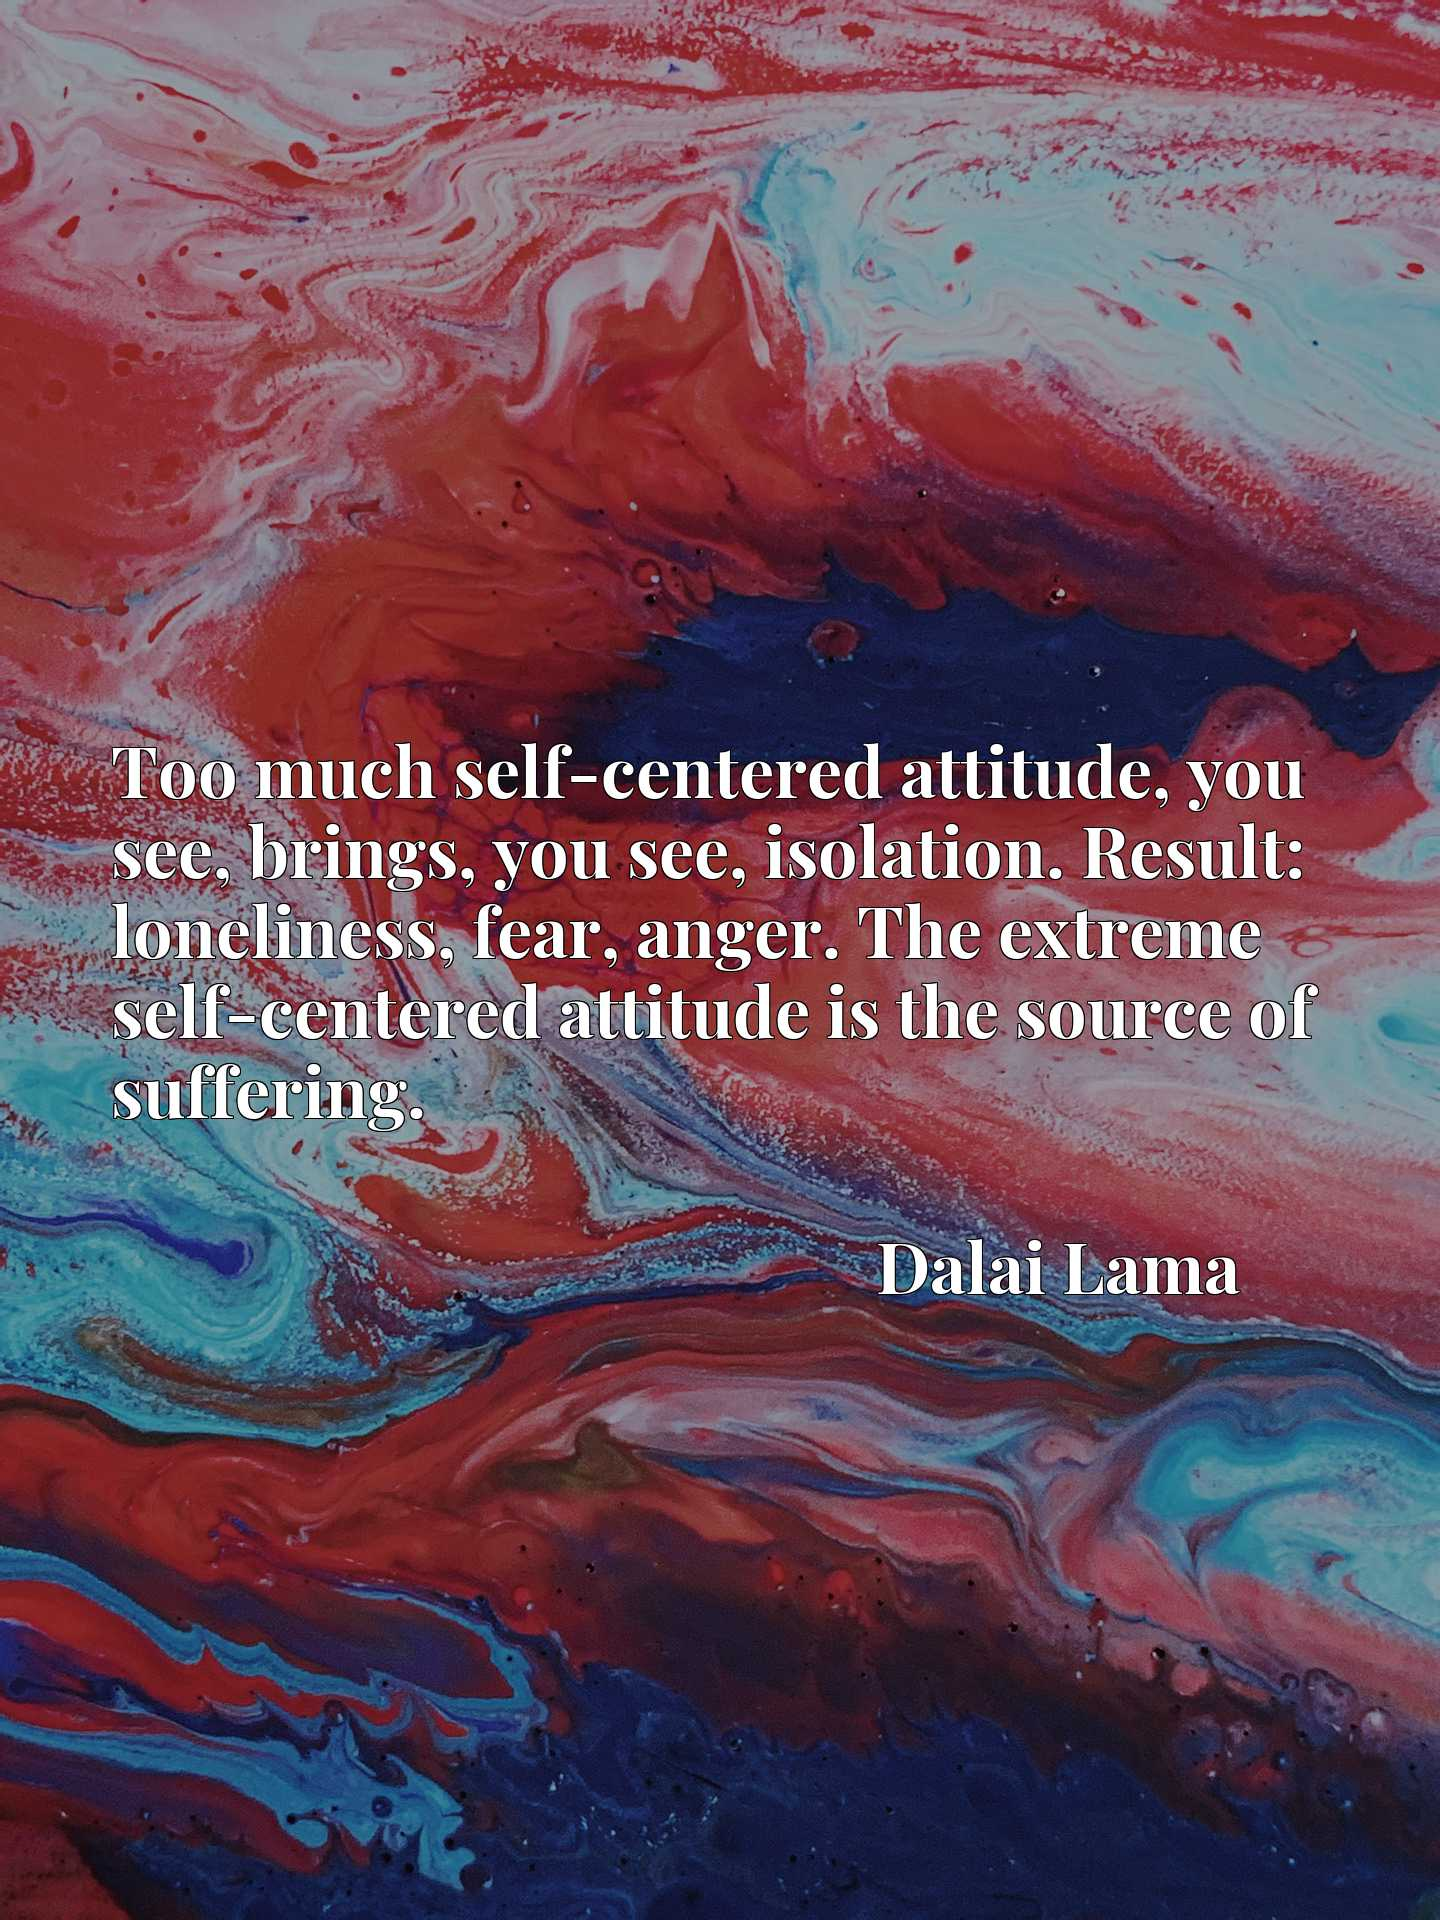 Too much self-centered attitude, you see, brings, you see, isolation. Result: loneliness, fear, anger. The extreme self-centered attitude is the source of suffering.